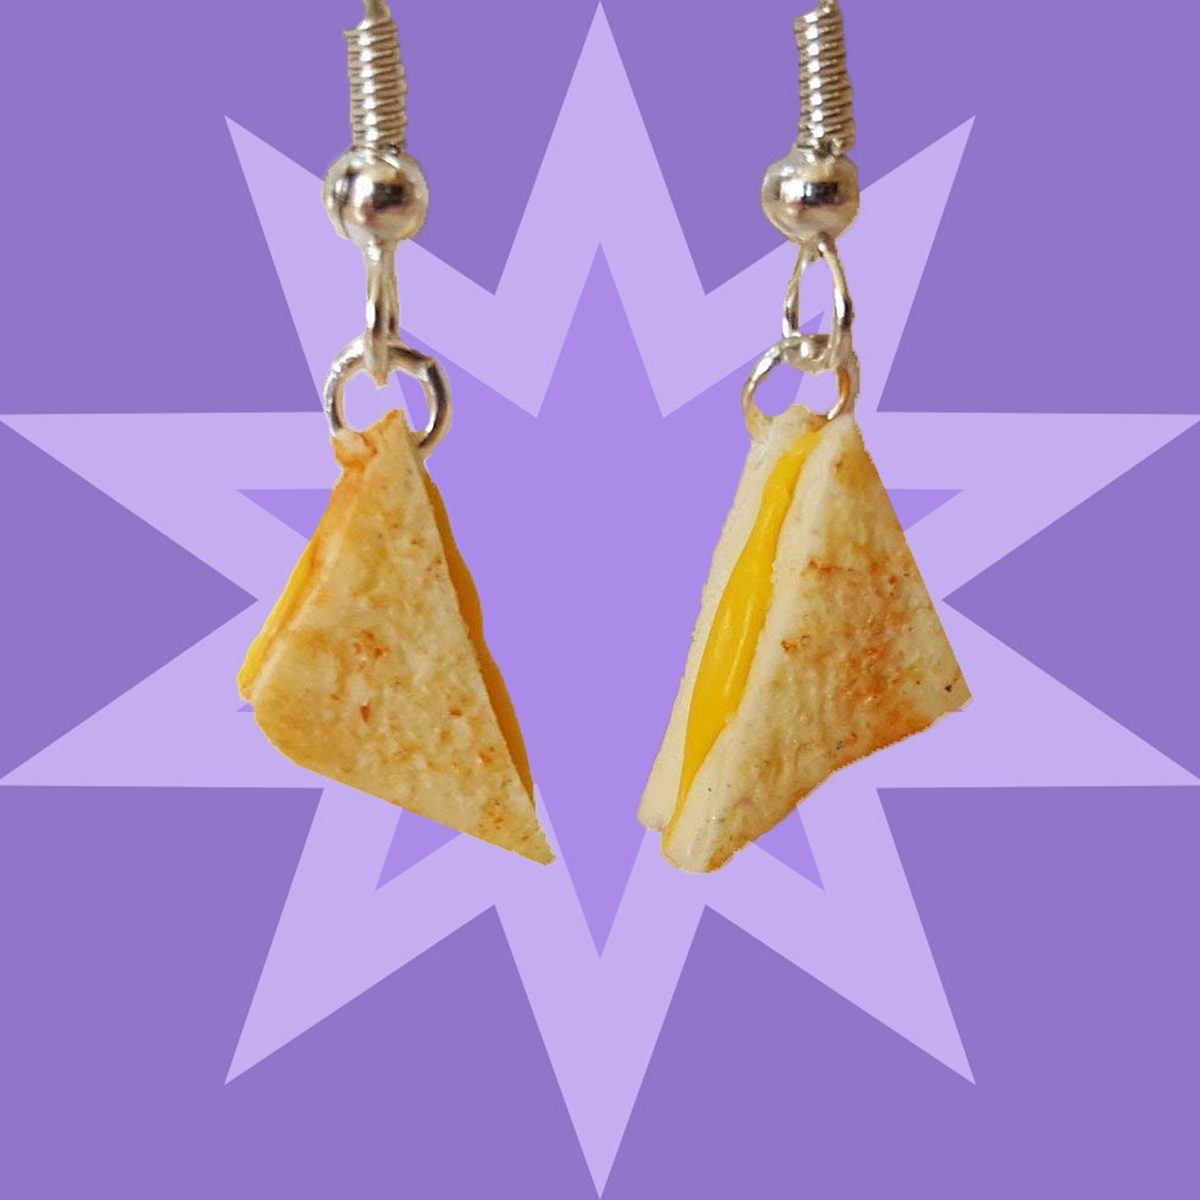 Food Jewelry - Grilled Cheese Earrings - Food Earrings